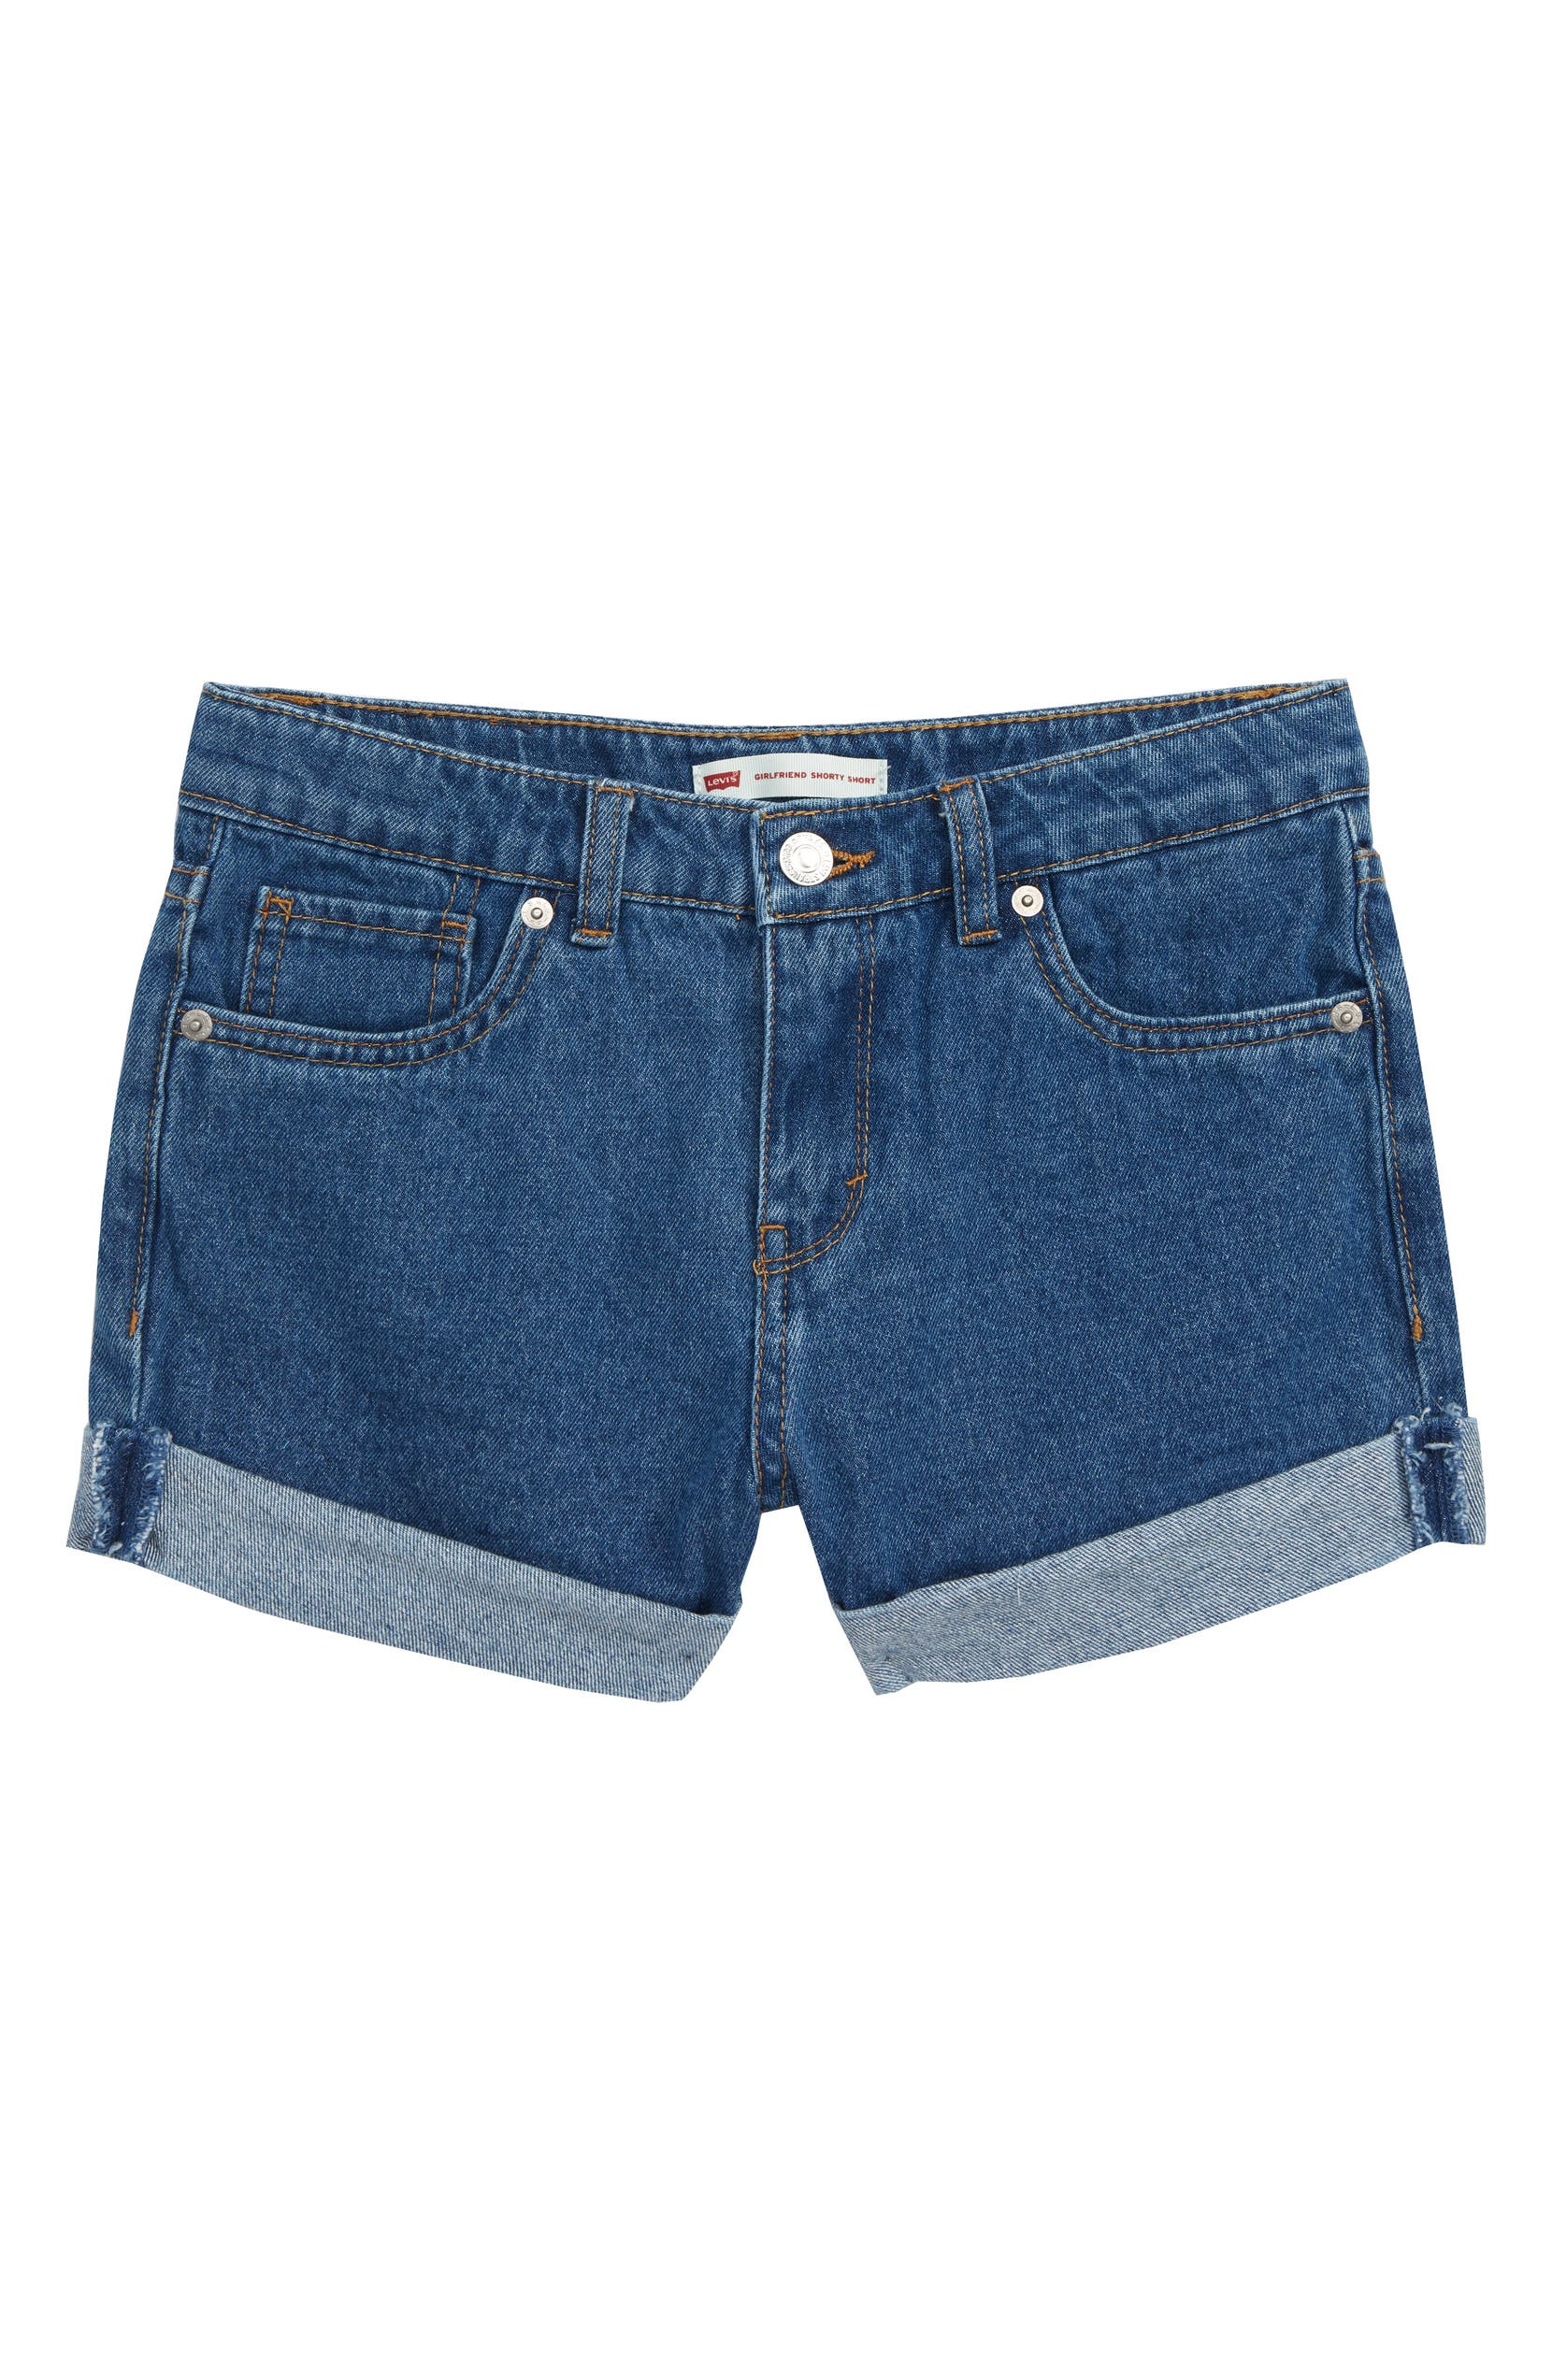 83f949ee47 Levi's® Girlfriend Rolled Cuff Denim Shorts (Big Girls) | Nordstrom